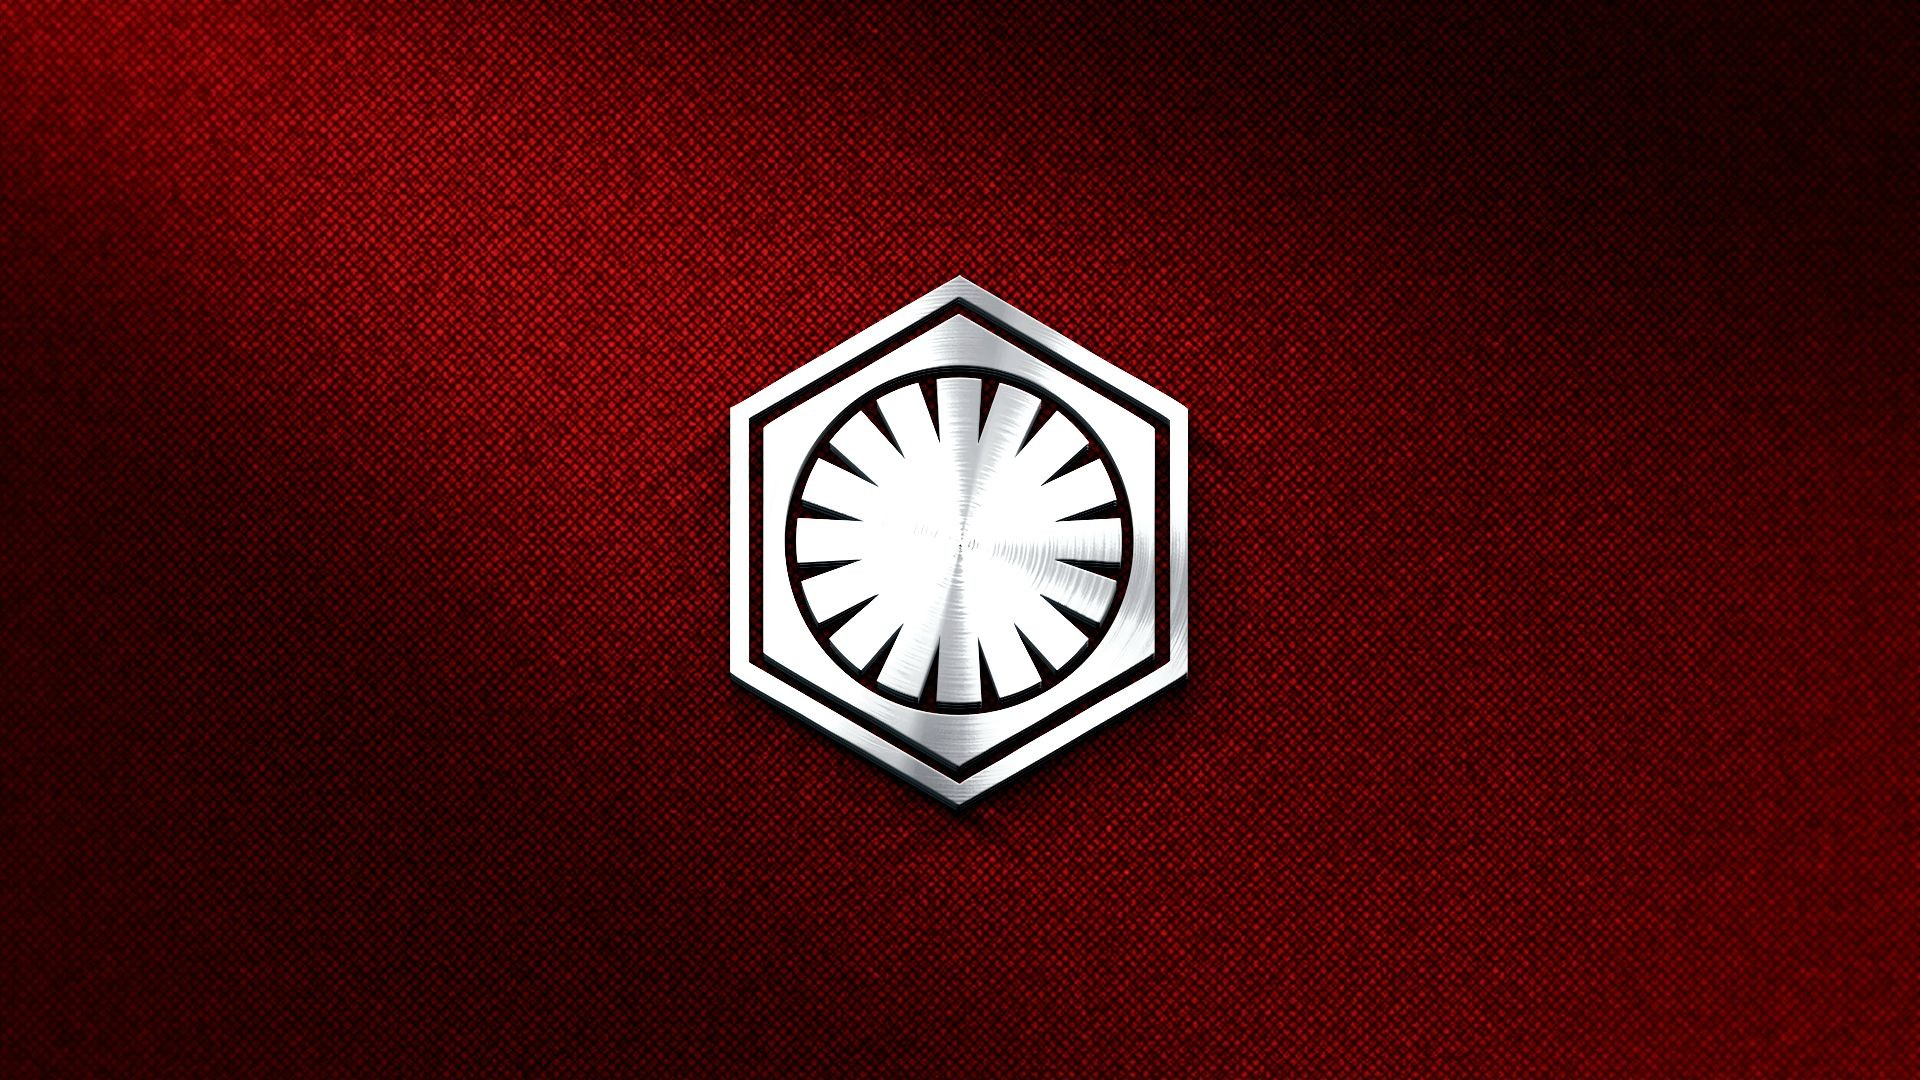 Enjoy Http Star Wars First Order Wallpaper Mac 1920x1080 Wallpaper Teahub Io